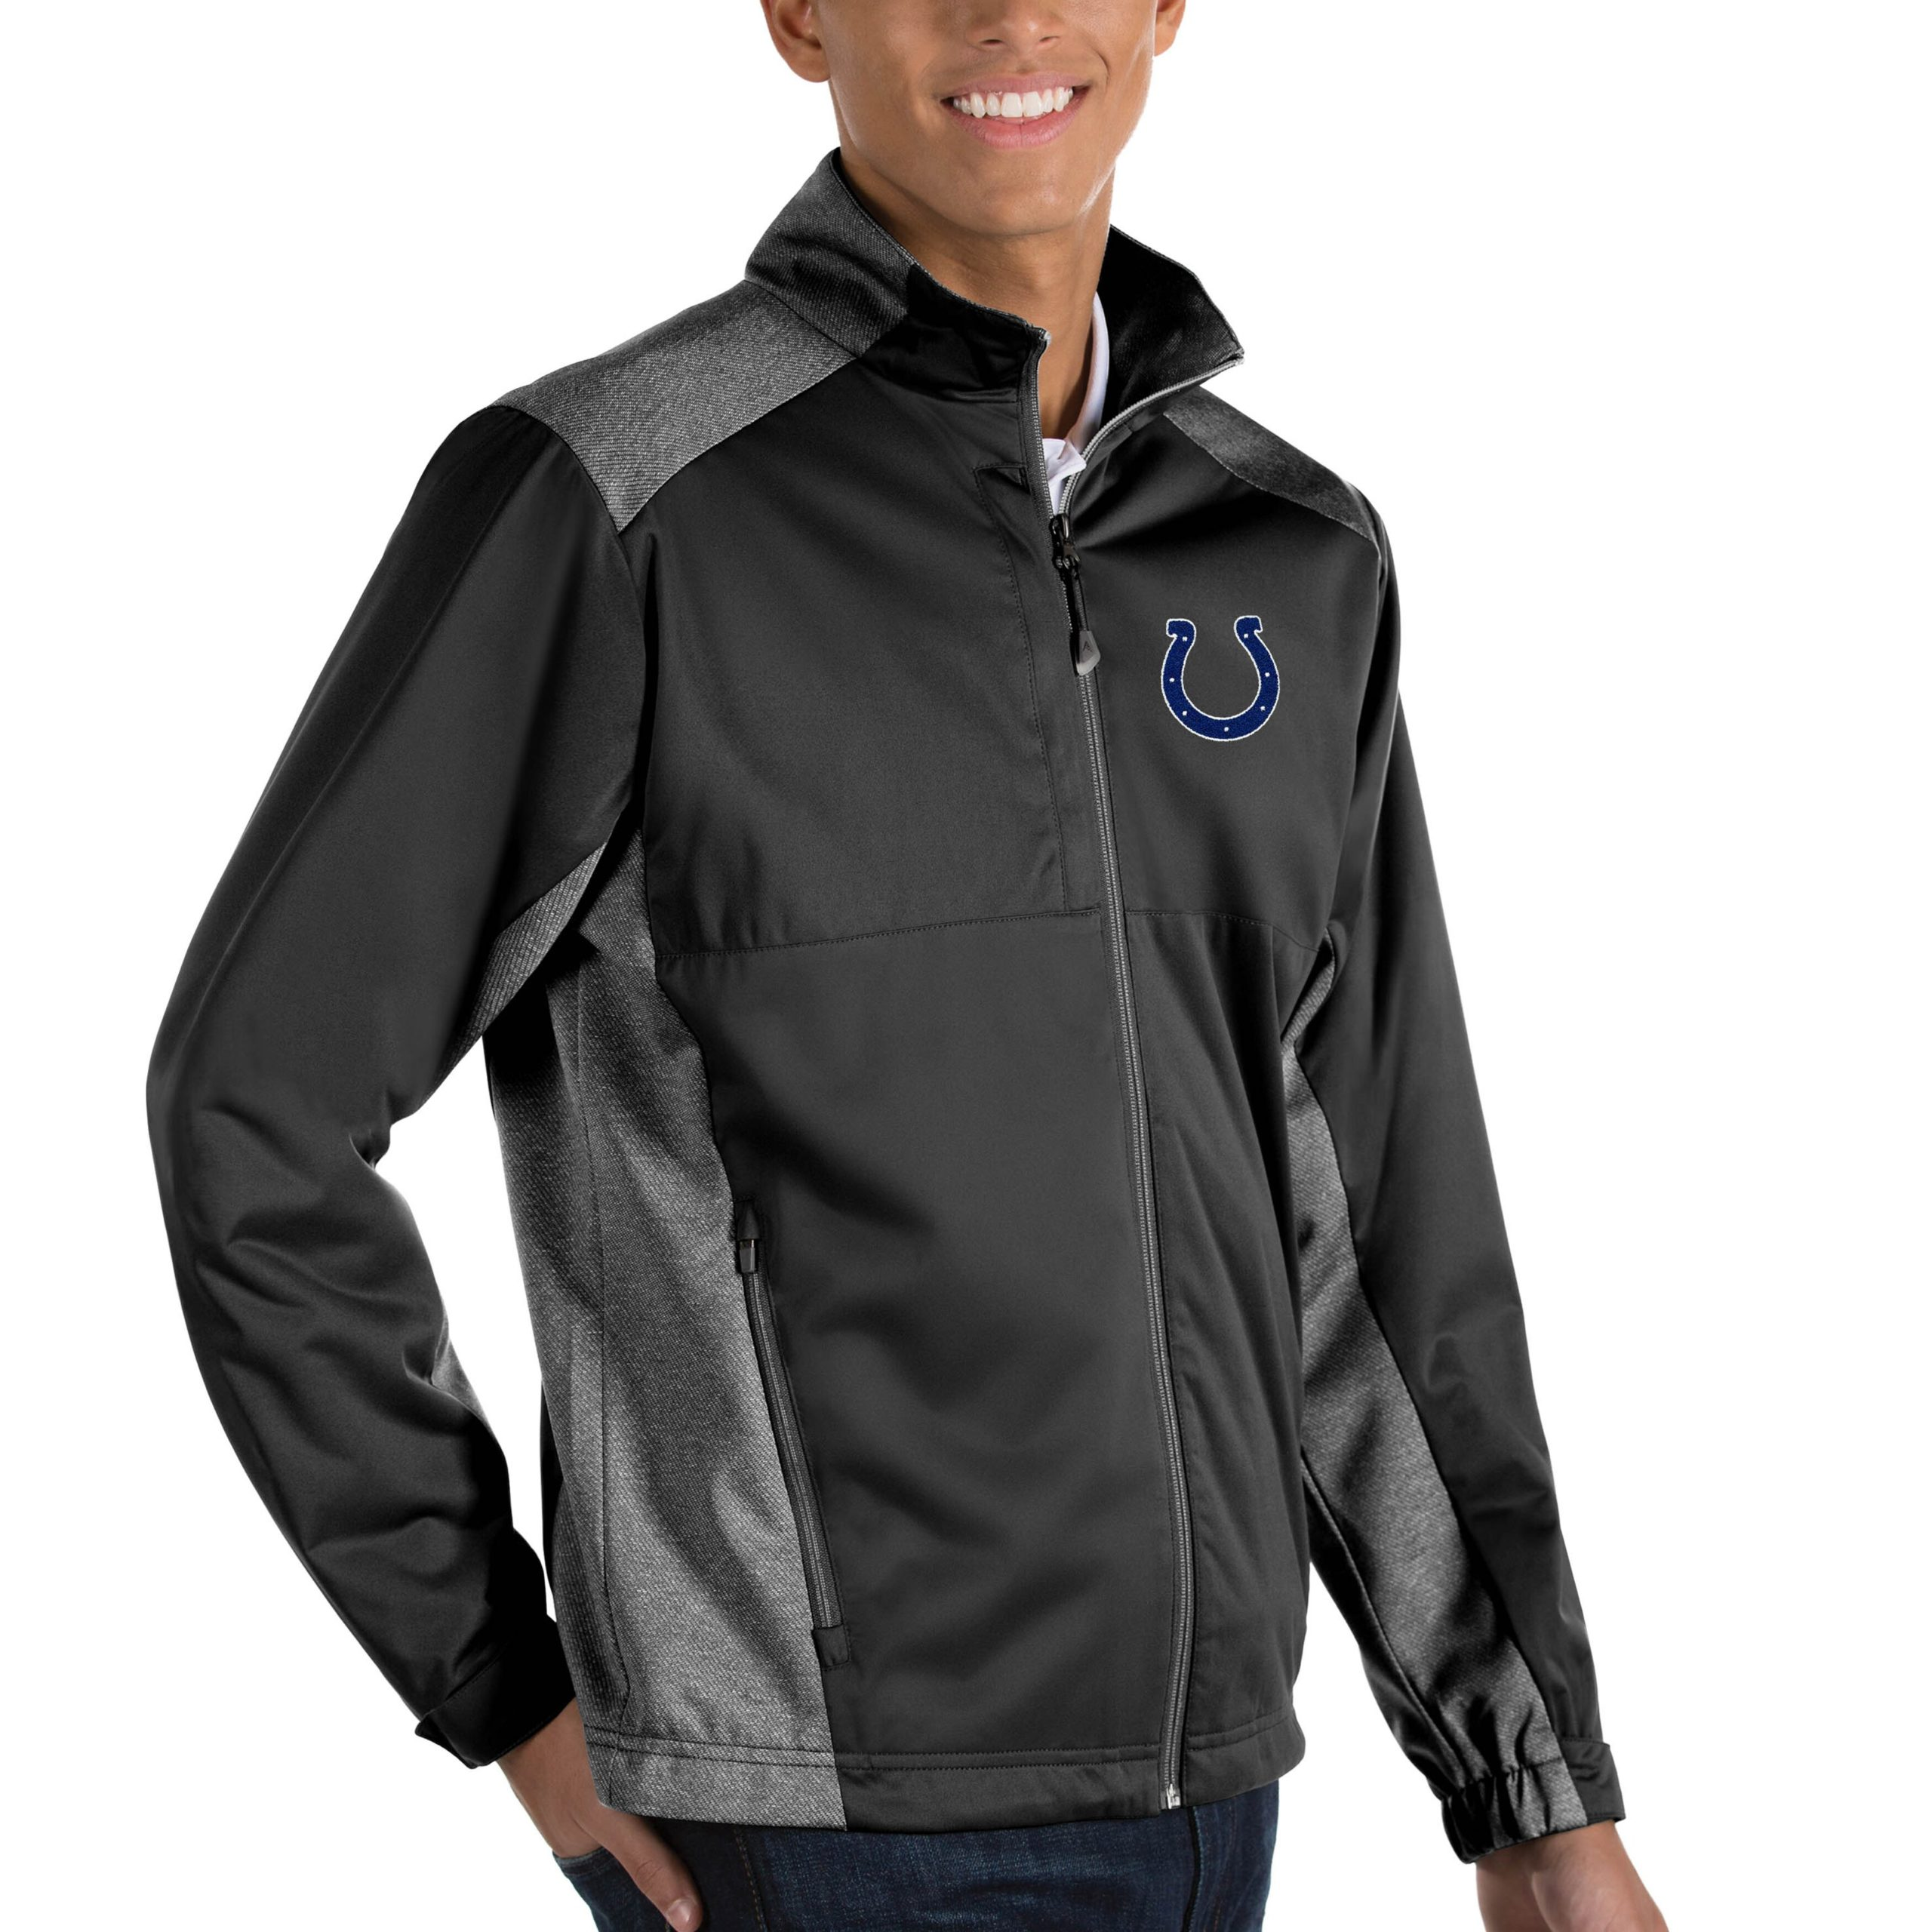 Indianapolis Colts Antigua Revolve Big & Tall Full-Zip Jacket - Heather Black